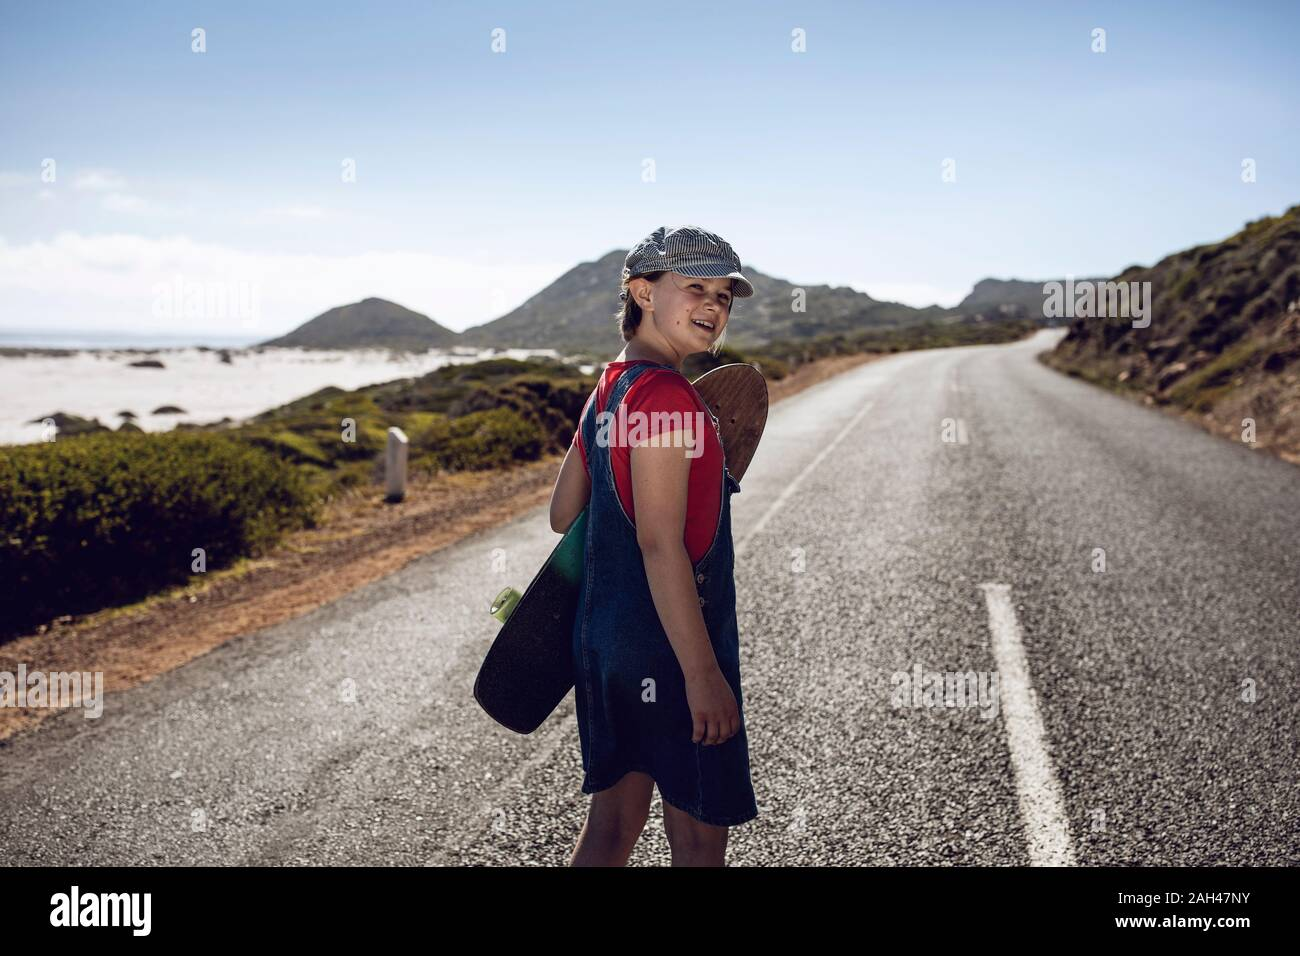 Portrait of smiling girl with skateboard standing on country road, Cape Town, Western Cape, South Africa Stock Photo